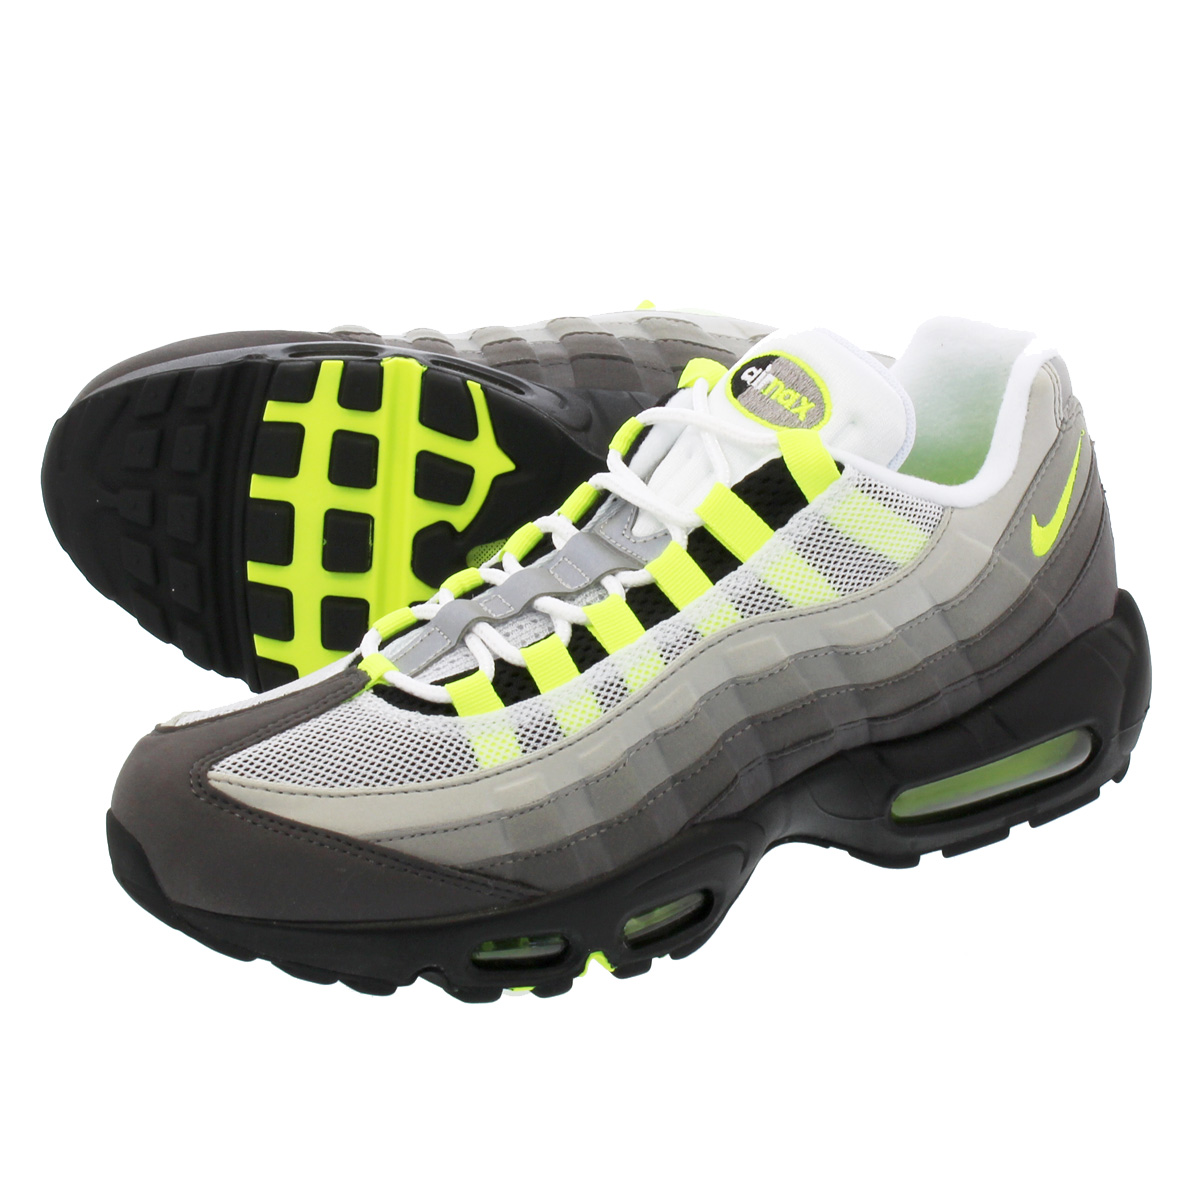 100% authentic 6f434 6ce0f NIKE AIR MAX 95 OG Nike Air Max 95 OG BLACK VOLT MEDIUM ASH DARK PEWTER